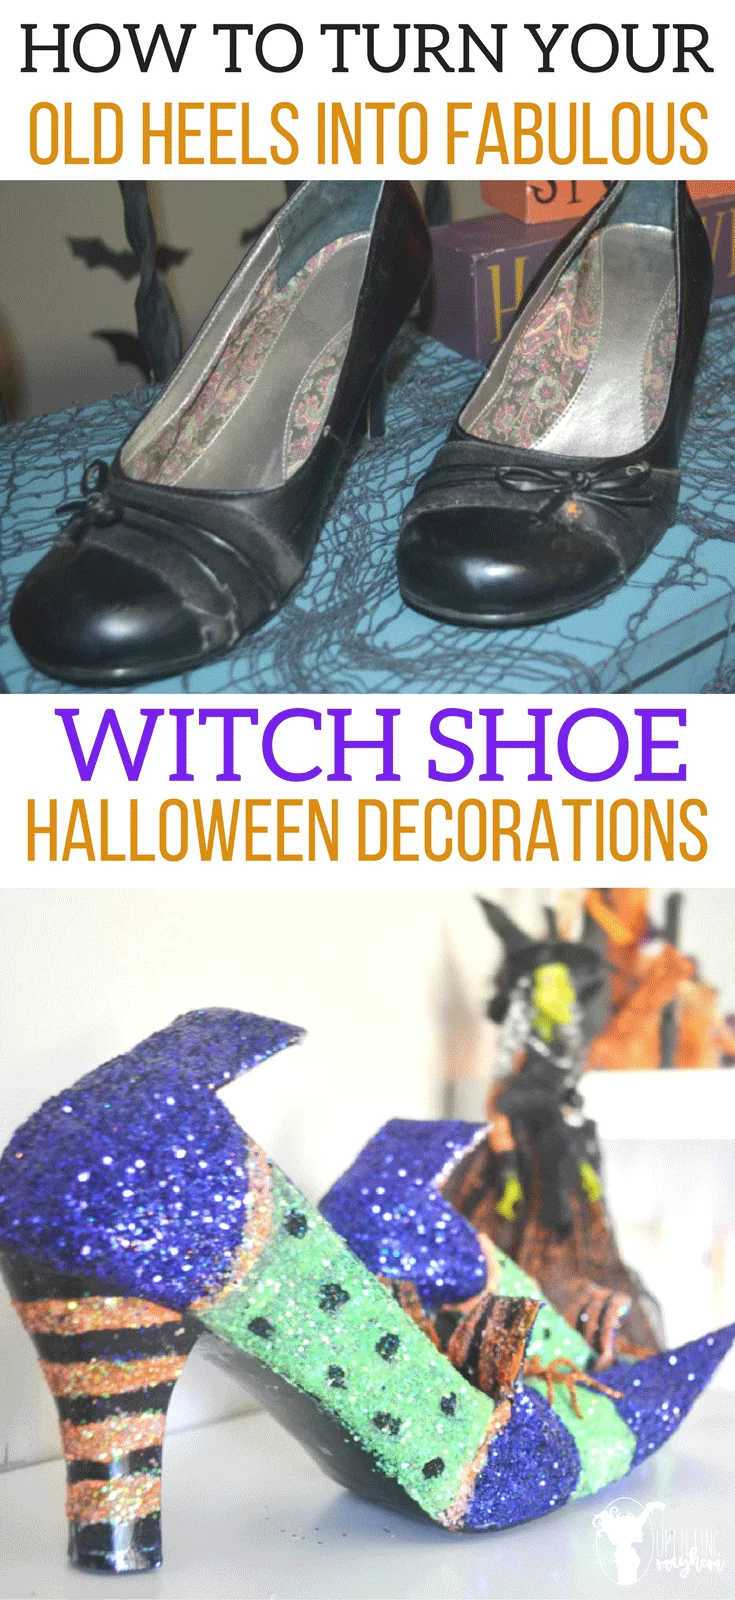 Diy Witch Shoes That Are Wickedly Cute For Halloween Uplifting Mayhem In 2020 Witch Shoes Witch Diy Pumpkin Halloween Decorations